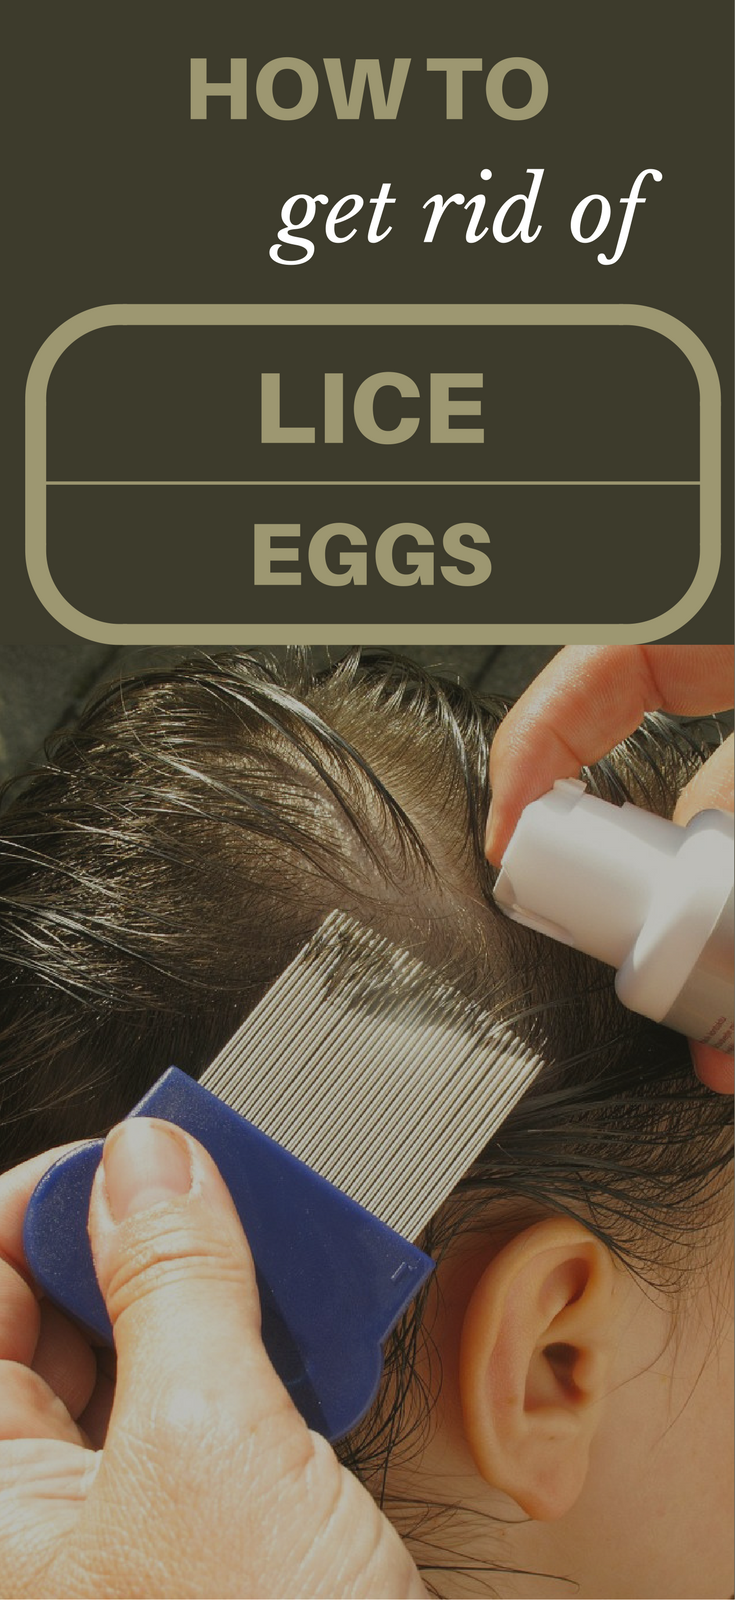 How To Get Rid Of Lice Eggs Topcleaningtips Com